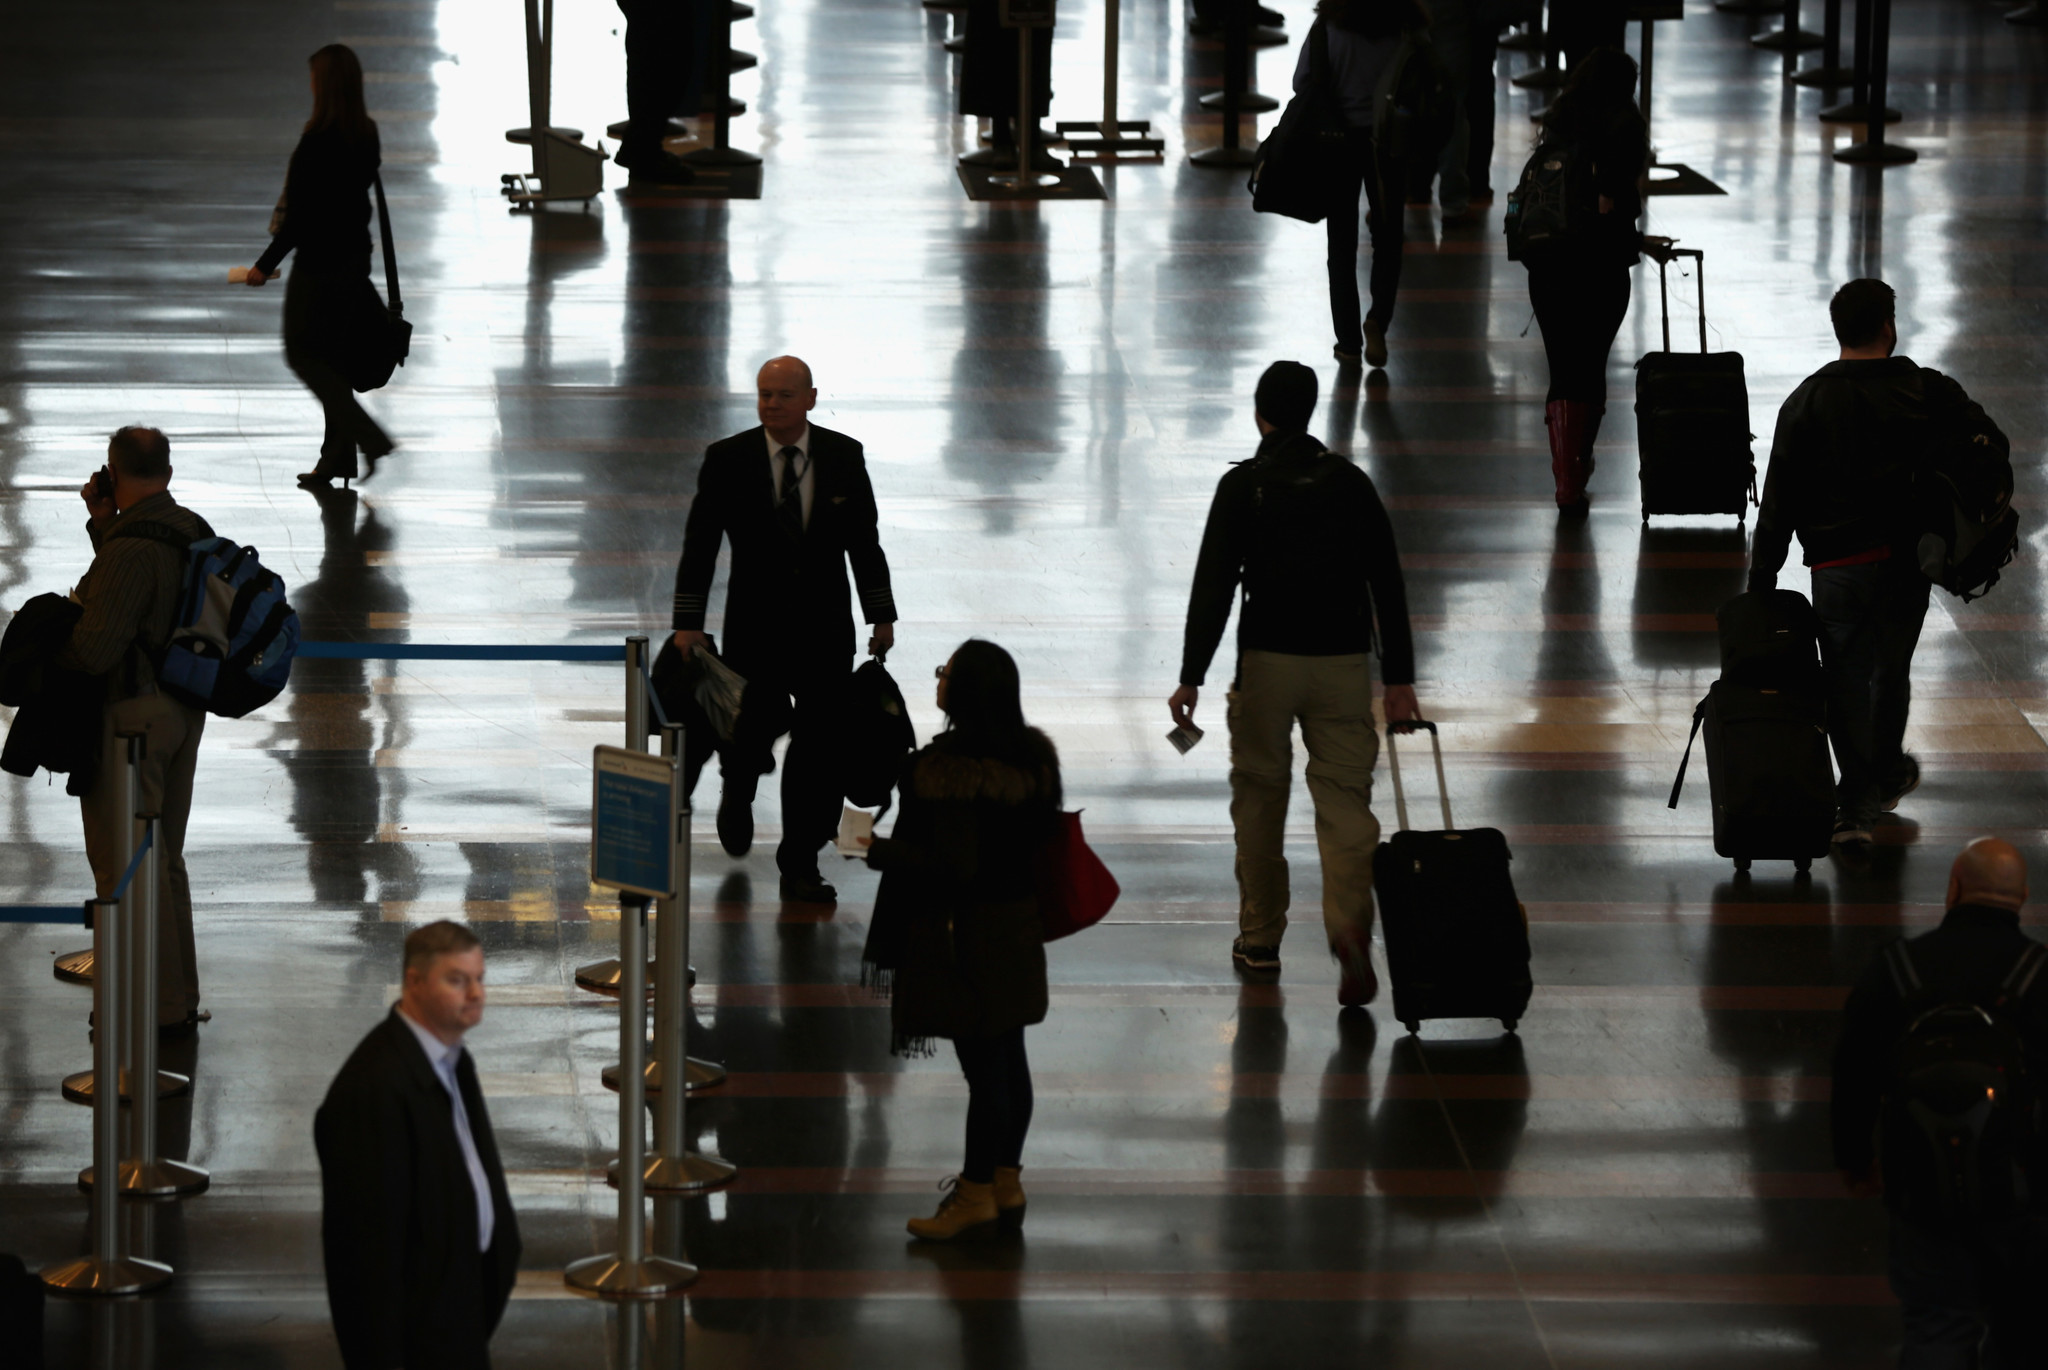 Business travelers feel safest in Washington, DC, and Los Angeles, survey finds